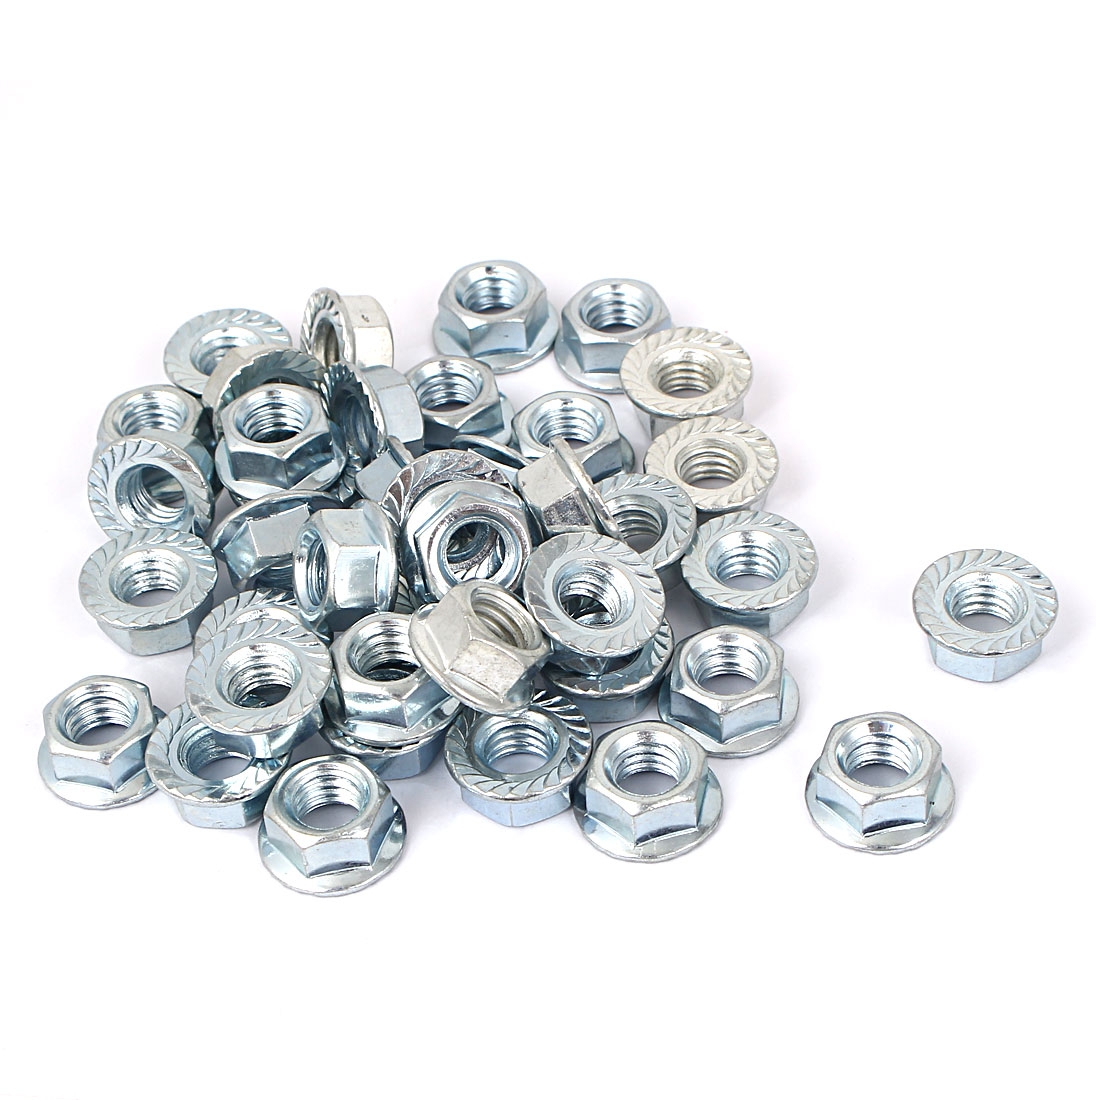 "3/8""x16 Carbon Steel Serrated Hex Flange Lock Nuts 40pcs"